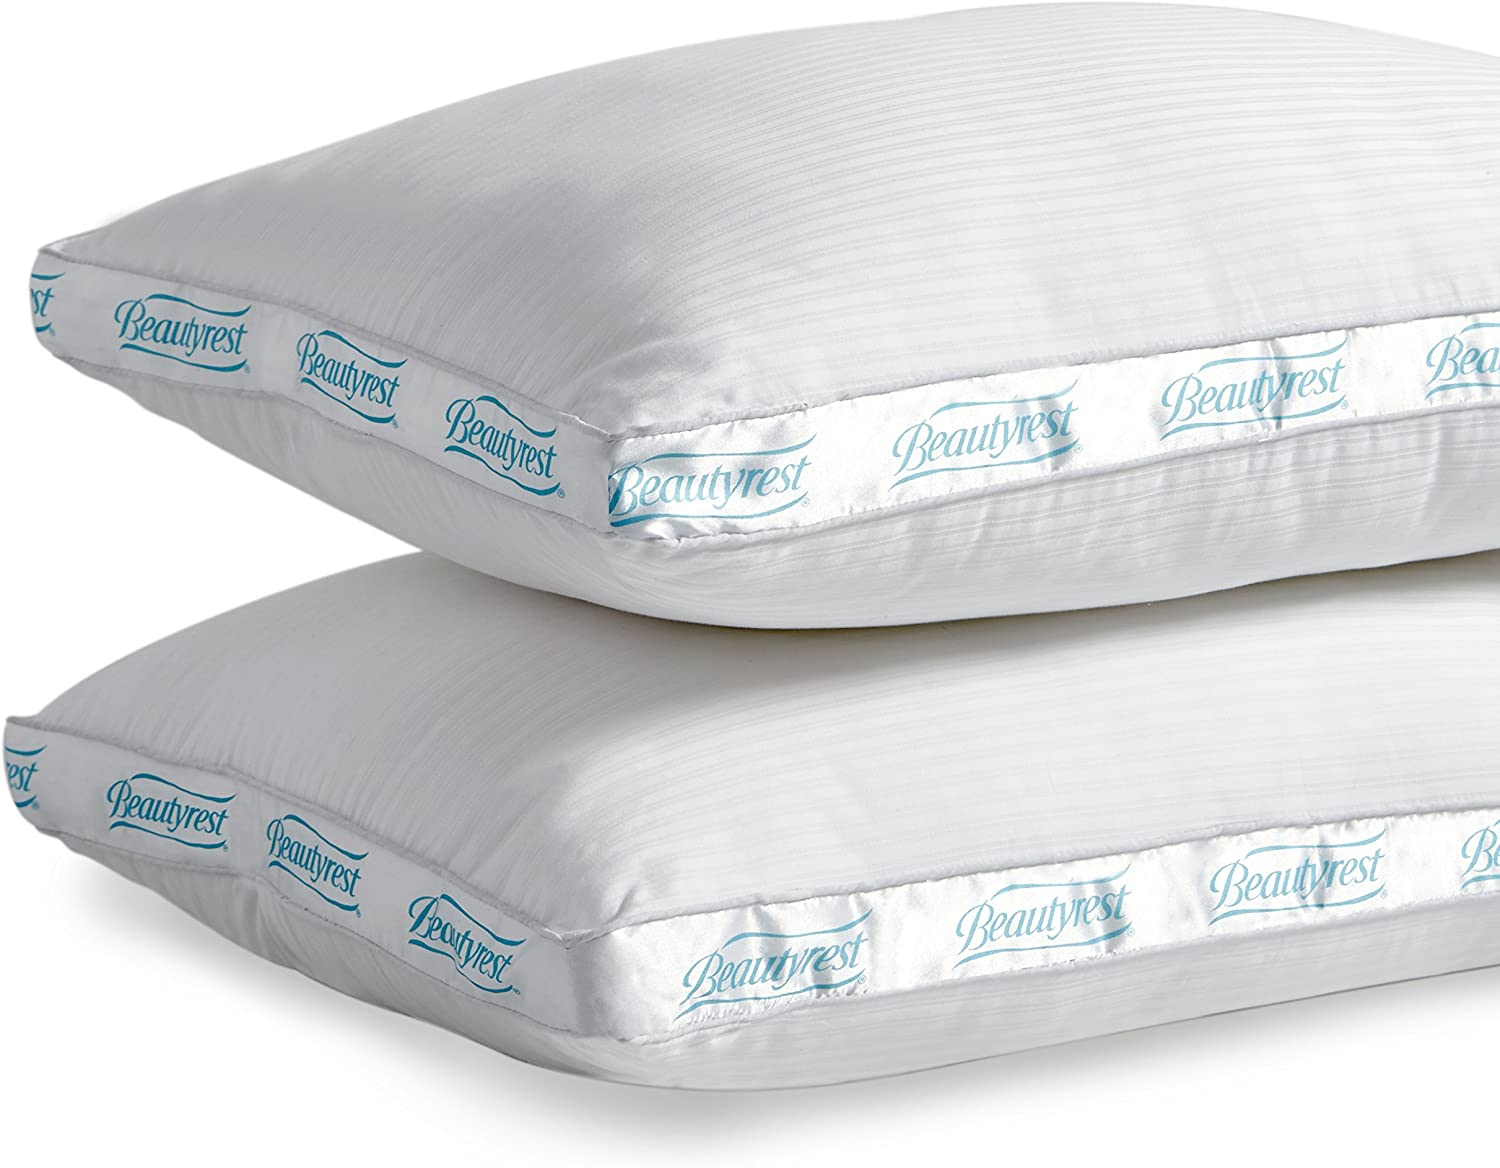 Beautyrest Extra Firm Pillow for Back & Side Sleeper